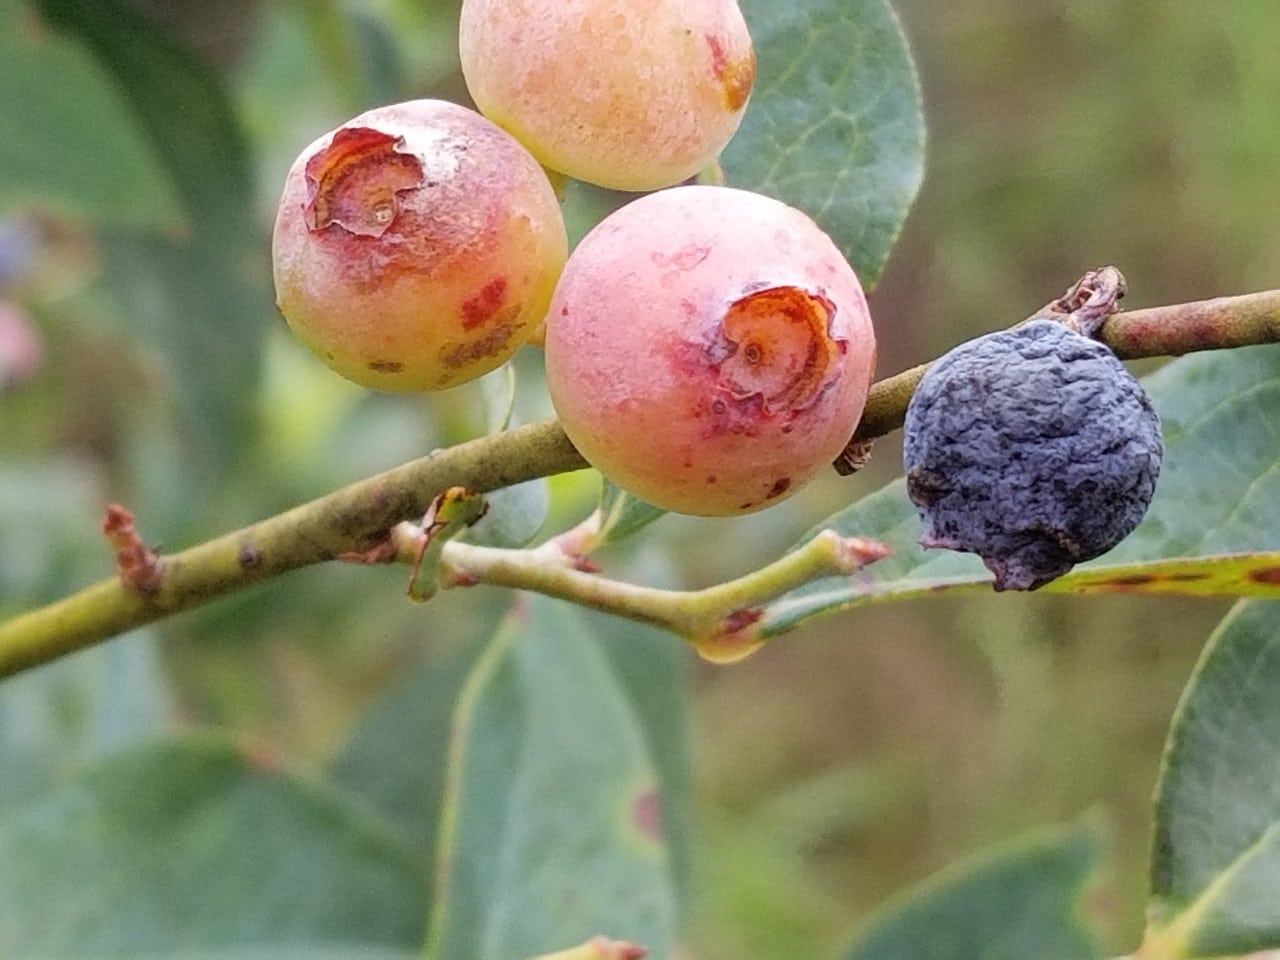 Mummy Berry is a disease that can be controlled easily by home gardeners.